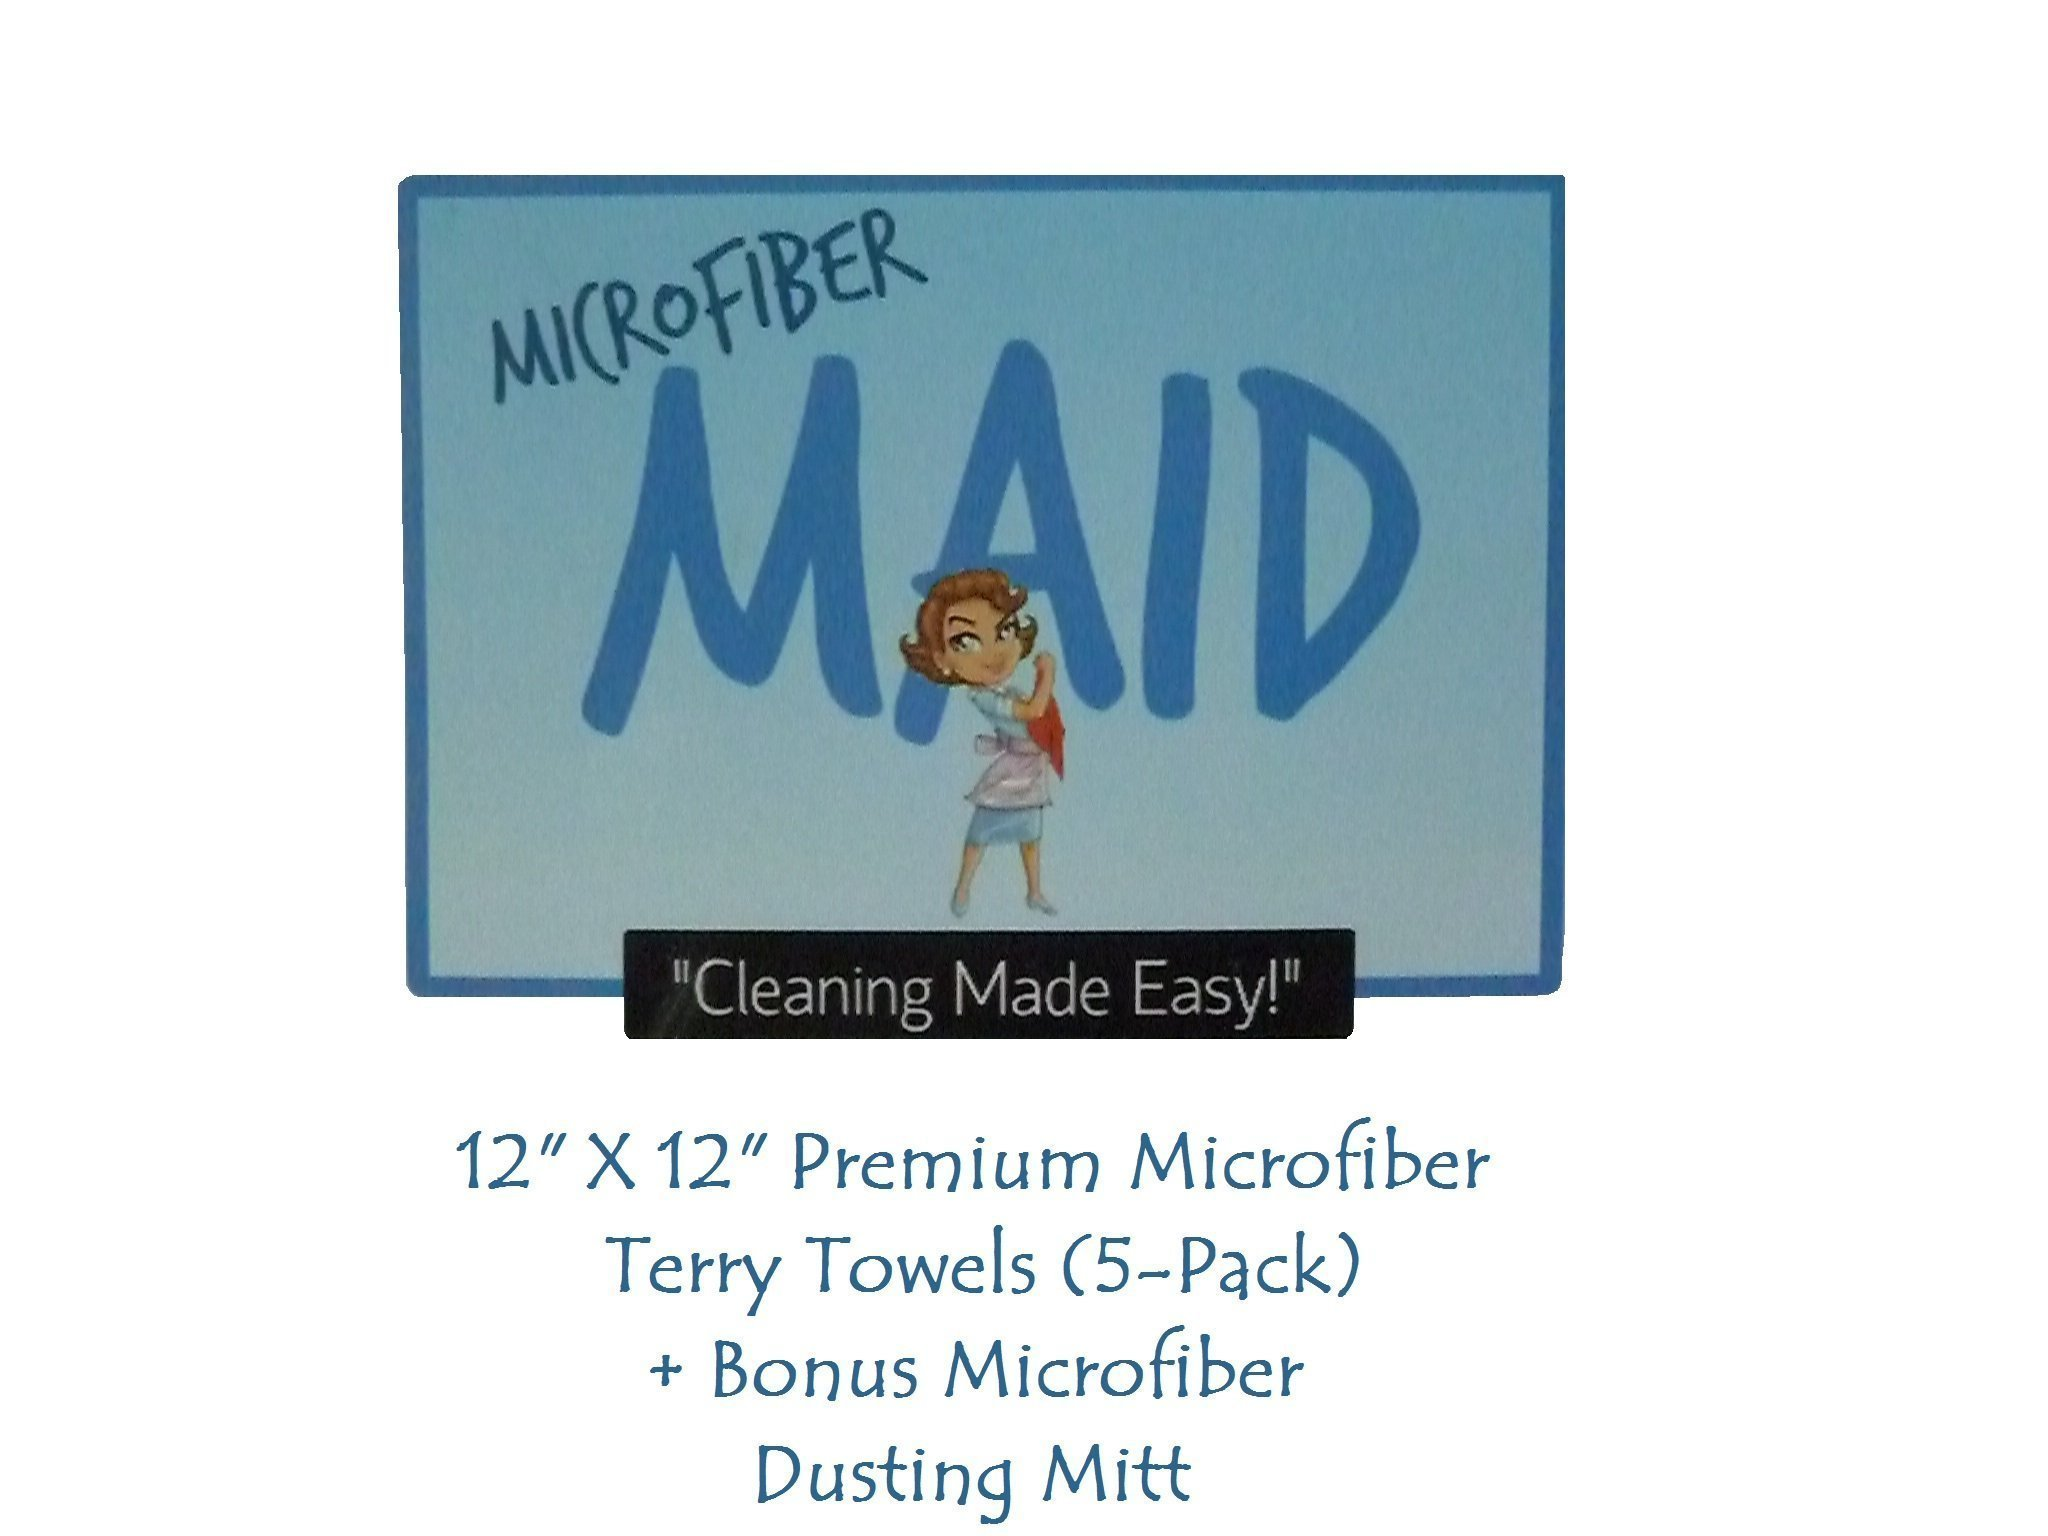 Microfiber Maid Cleaning Cloths, Quality Lint Free Terry Towels for Easy Clean Up! Premium Split Microfiber Saves Time and Offers a Smarter and Healthier Green Solution with Fewer or No Chemicals! For a Limited Time Get a Free Bonus Dusting Mitt!